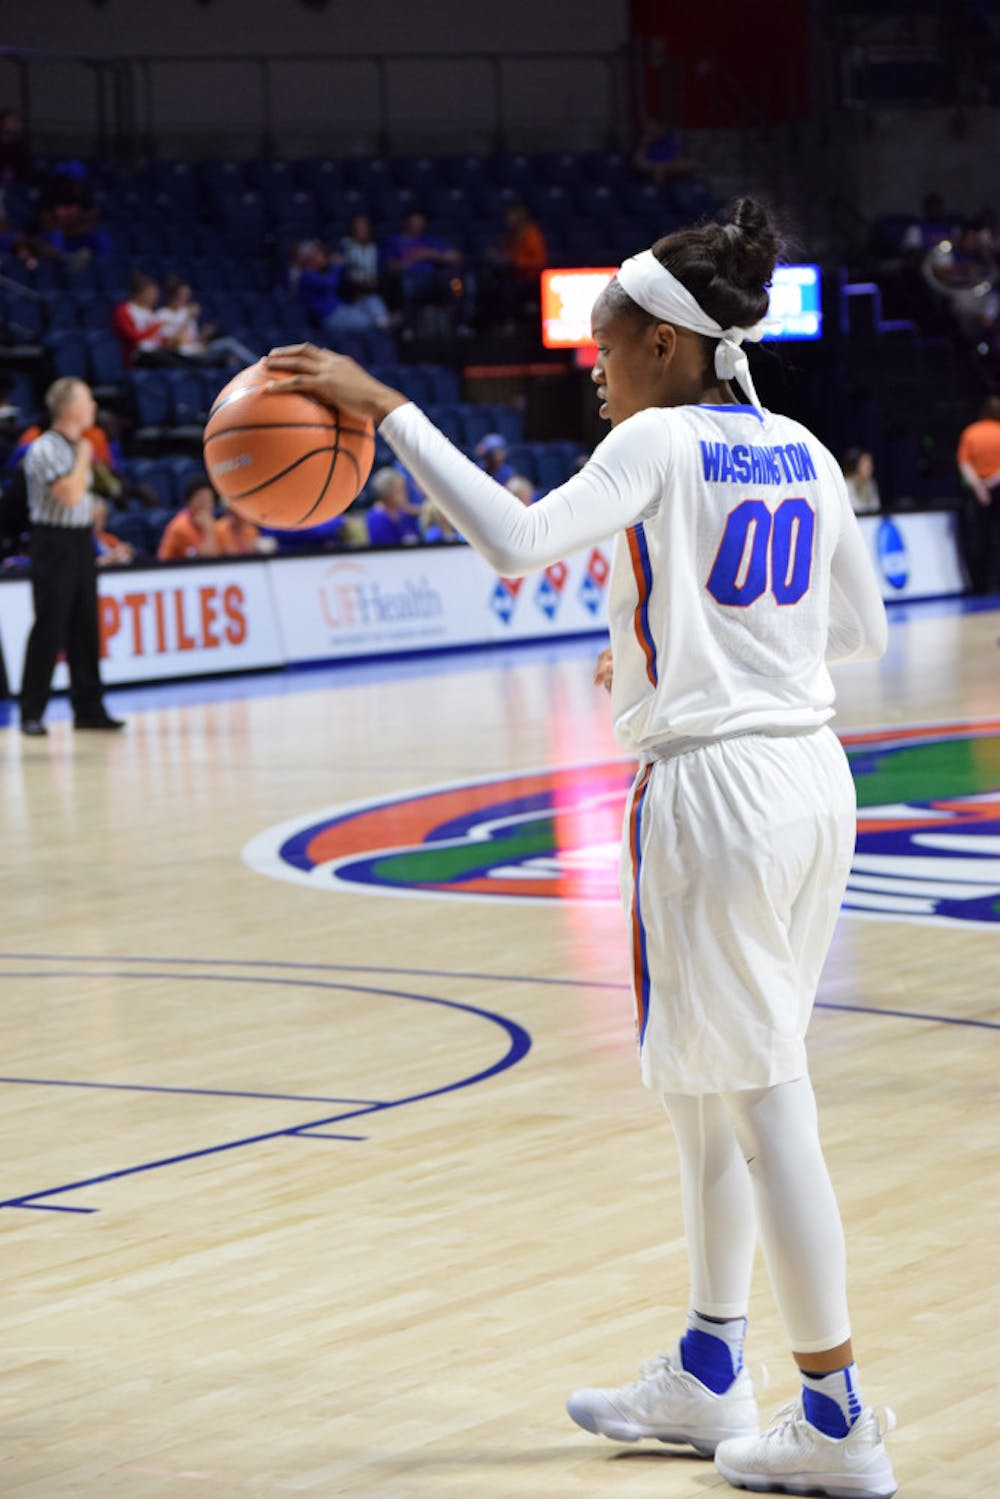 """<p><span id=""""docs-internal-guid-a48829f9-cb3d-40fc-b955-38fc9d61a27a""""><span>Coach Cameron Newbauer said UF has to do a better job passing and hauling in rebounds if it wants to beat No. 17 Florida State tonight at 7 at the O'Connell Center.</span> <span><br class=""""kix-line-break"""" /></span></span></p>"""